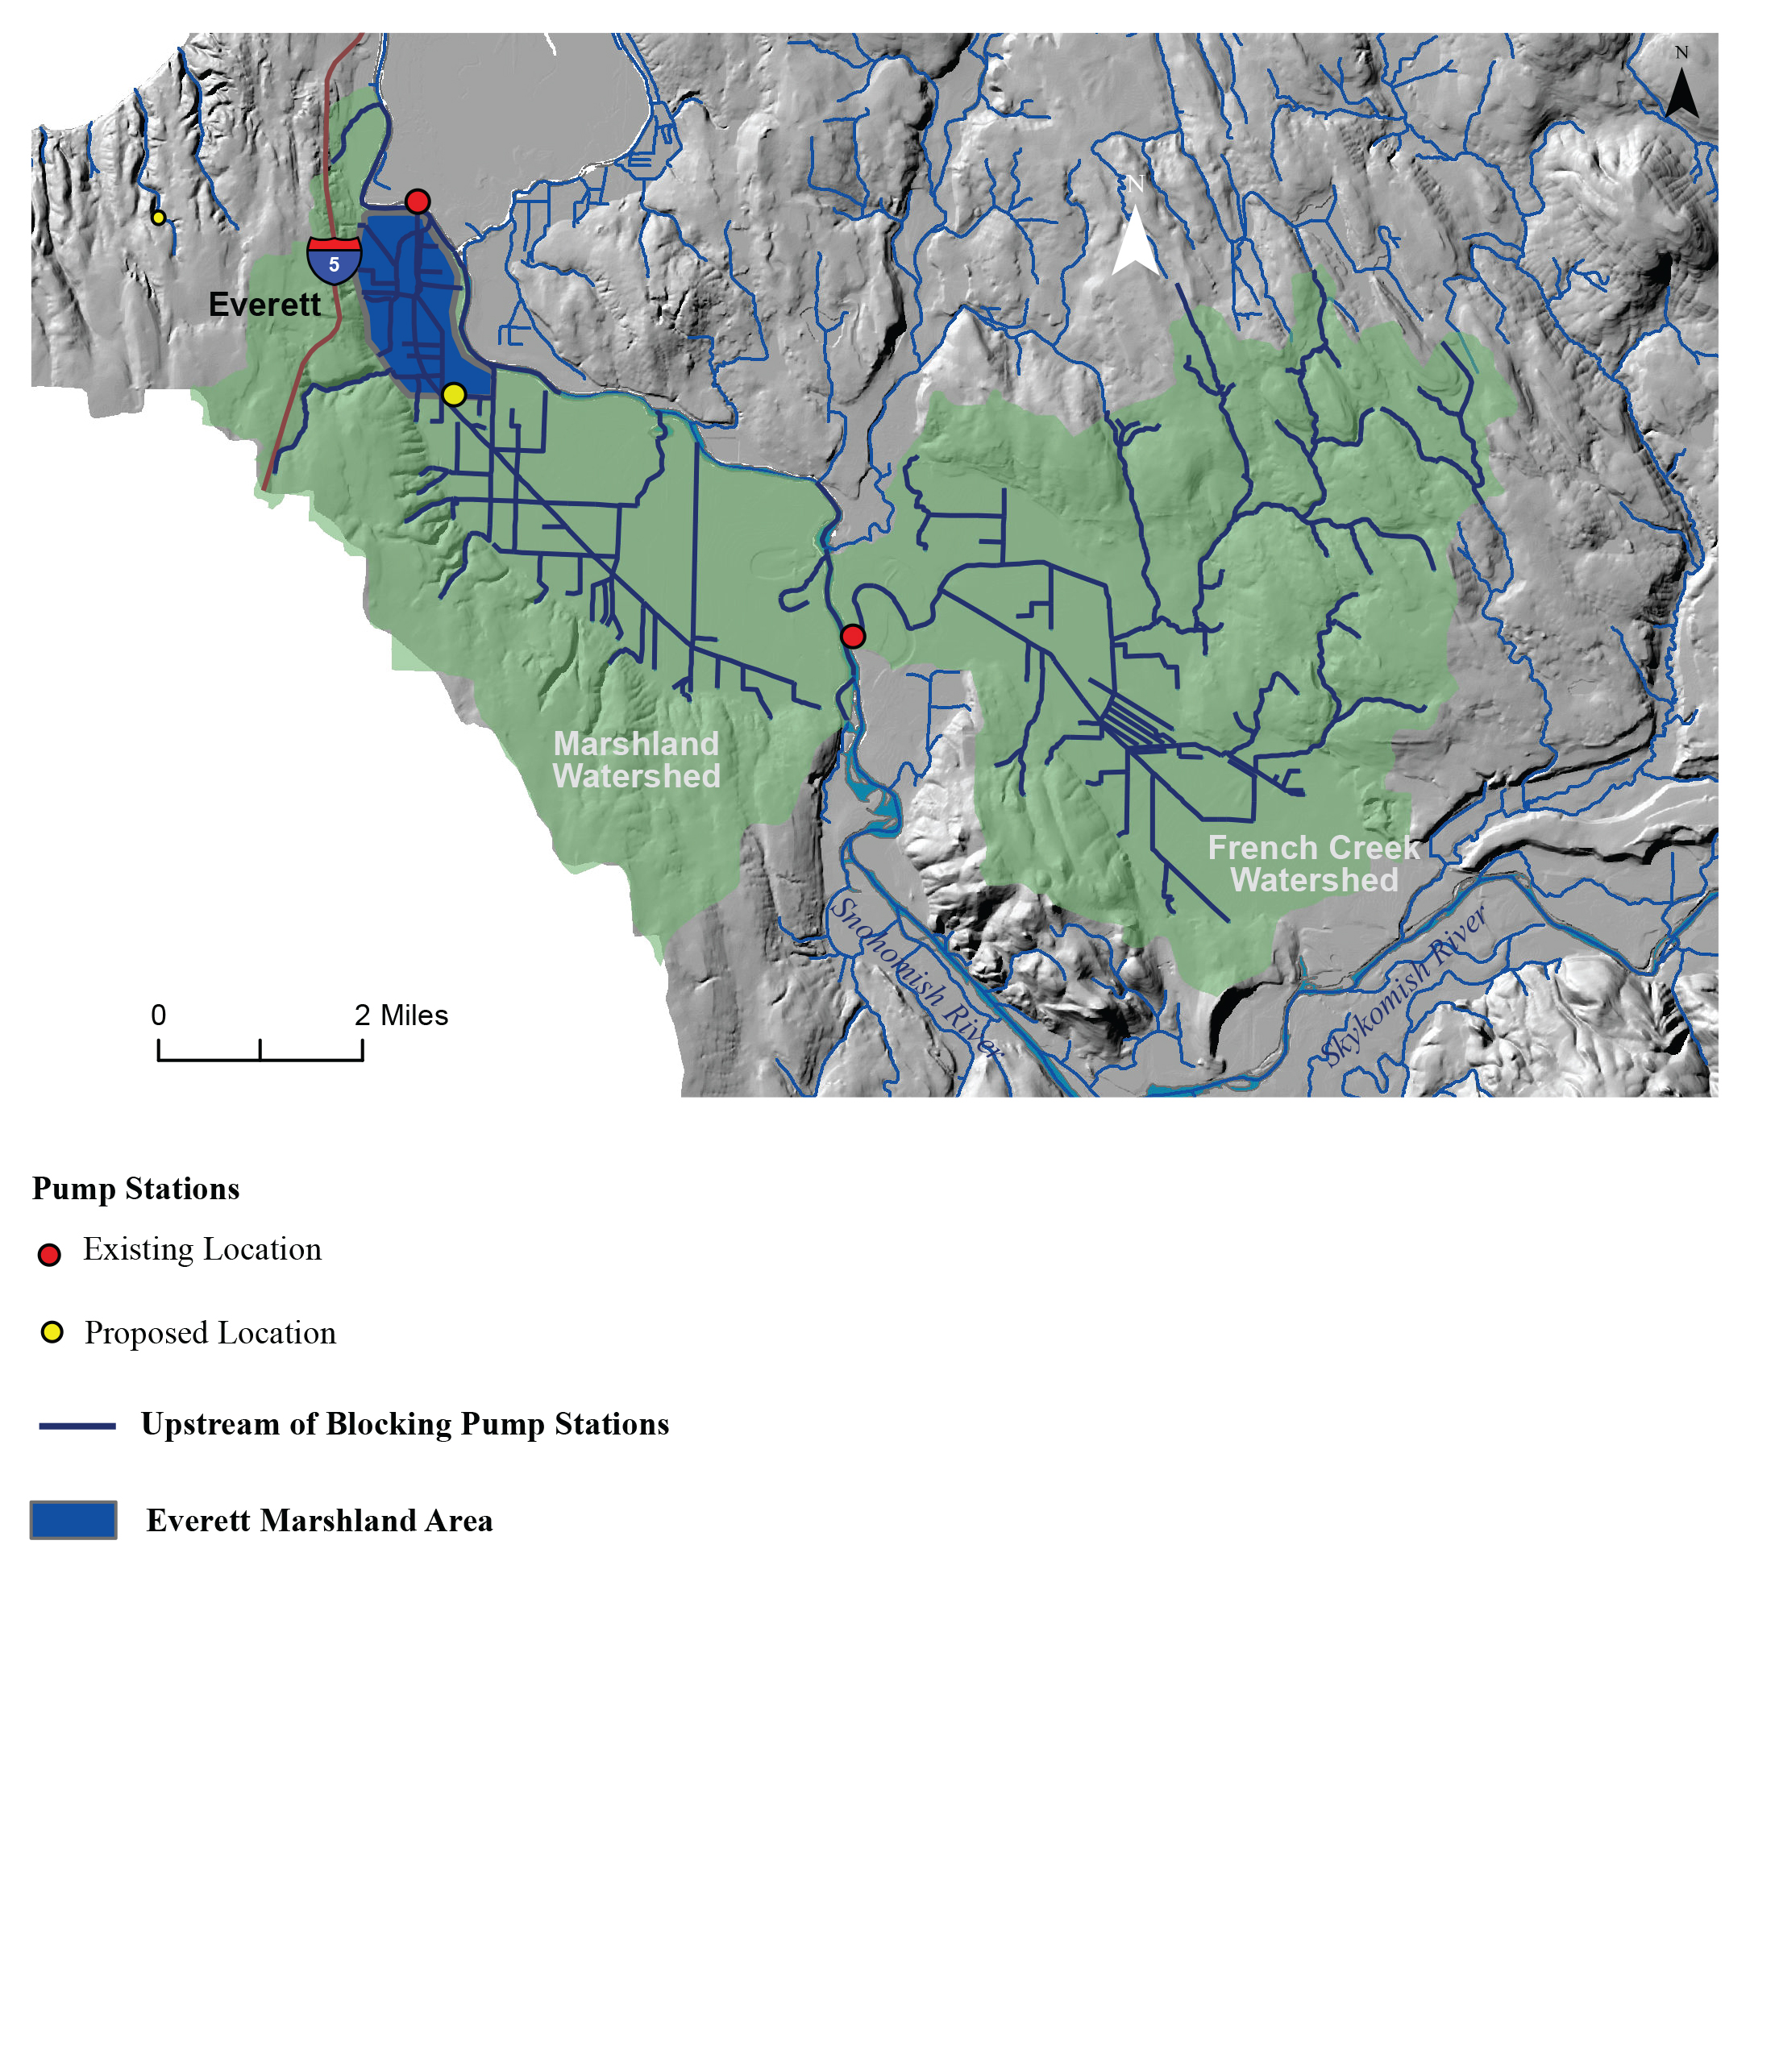 State of Our Watersheds: Pump stations block salmon access